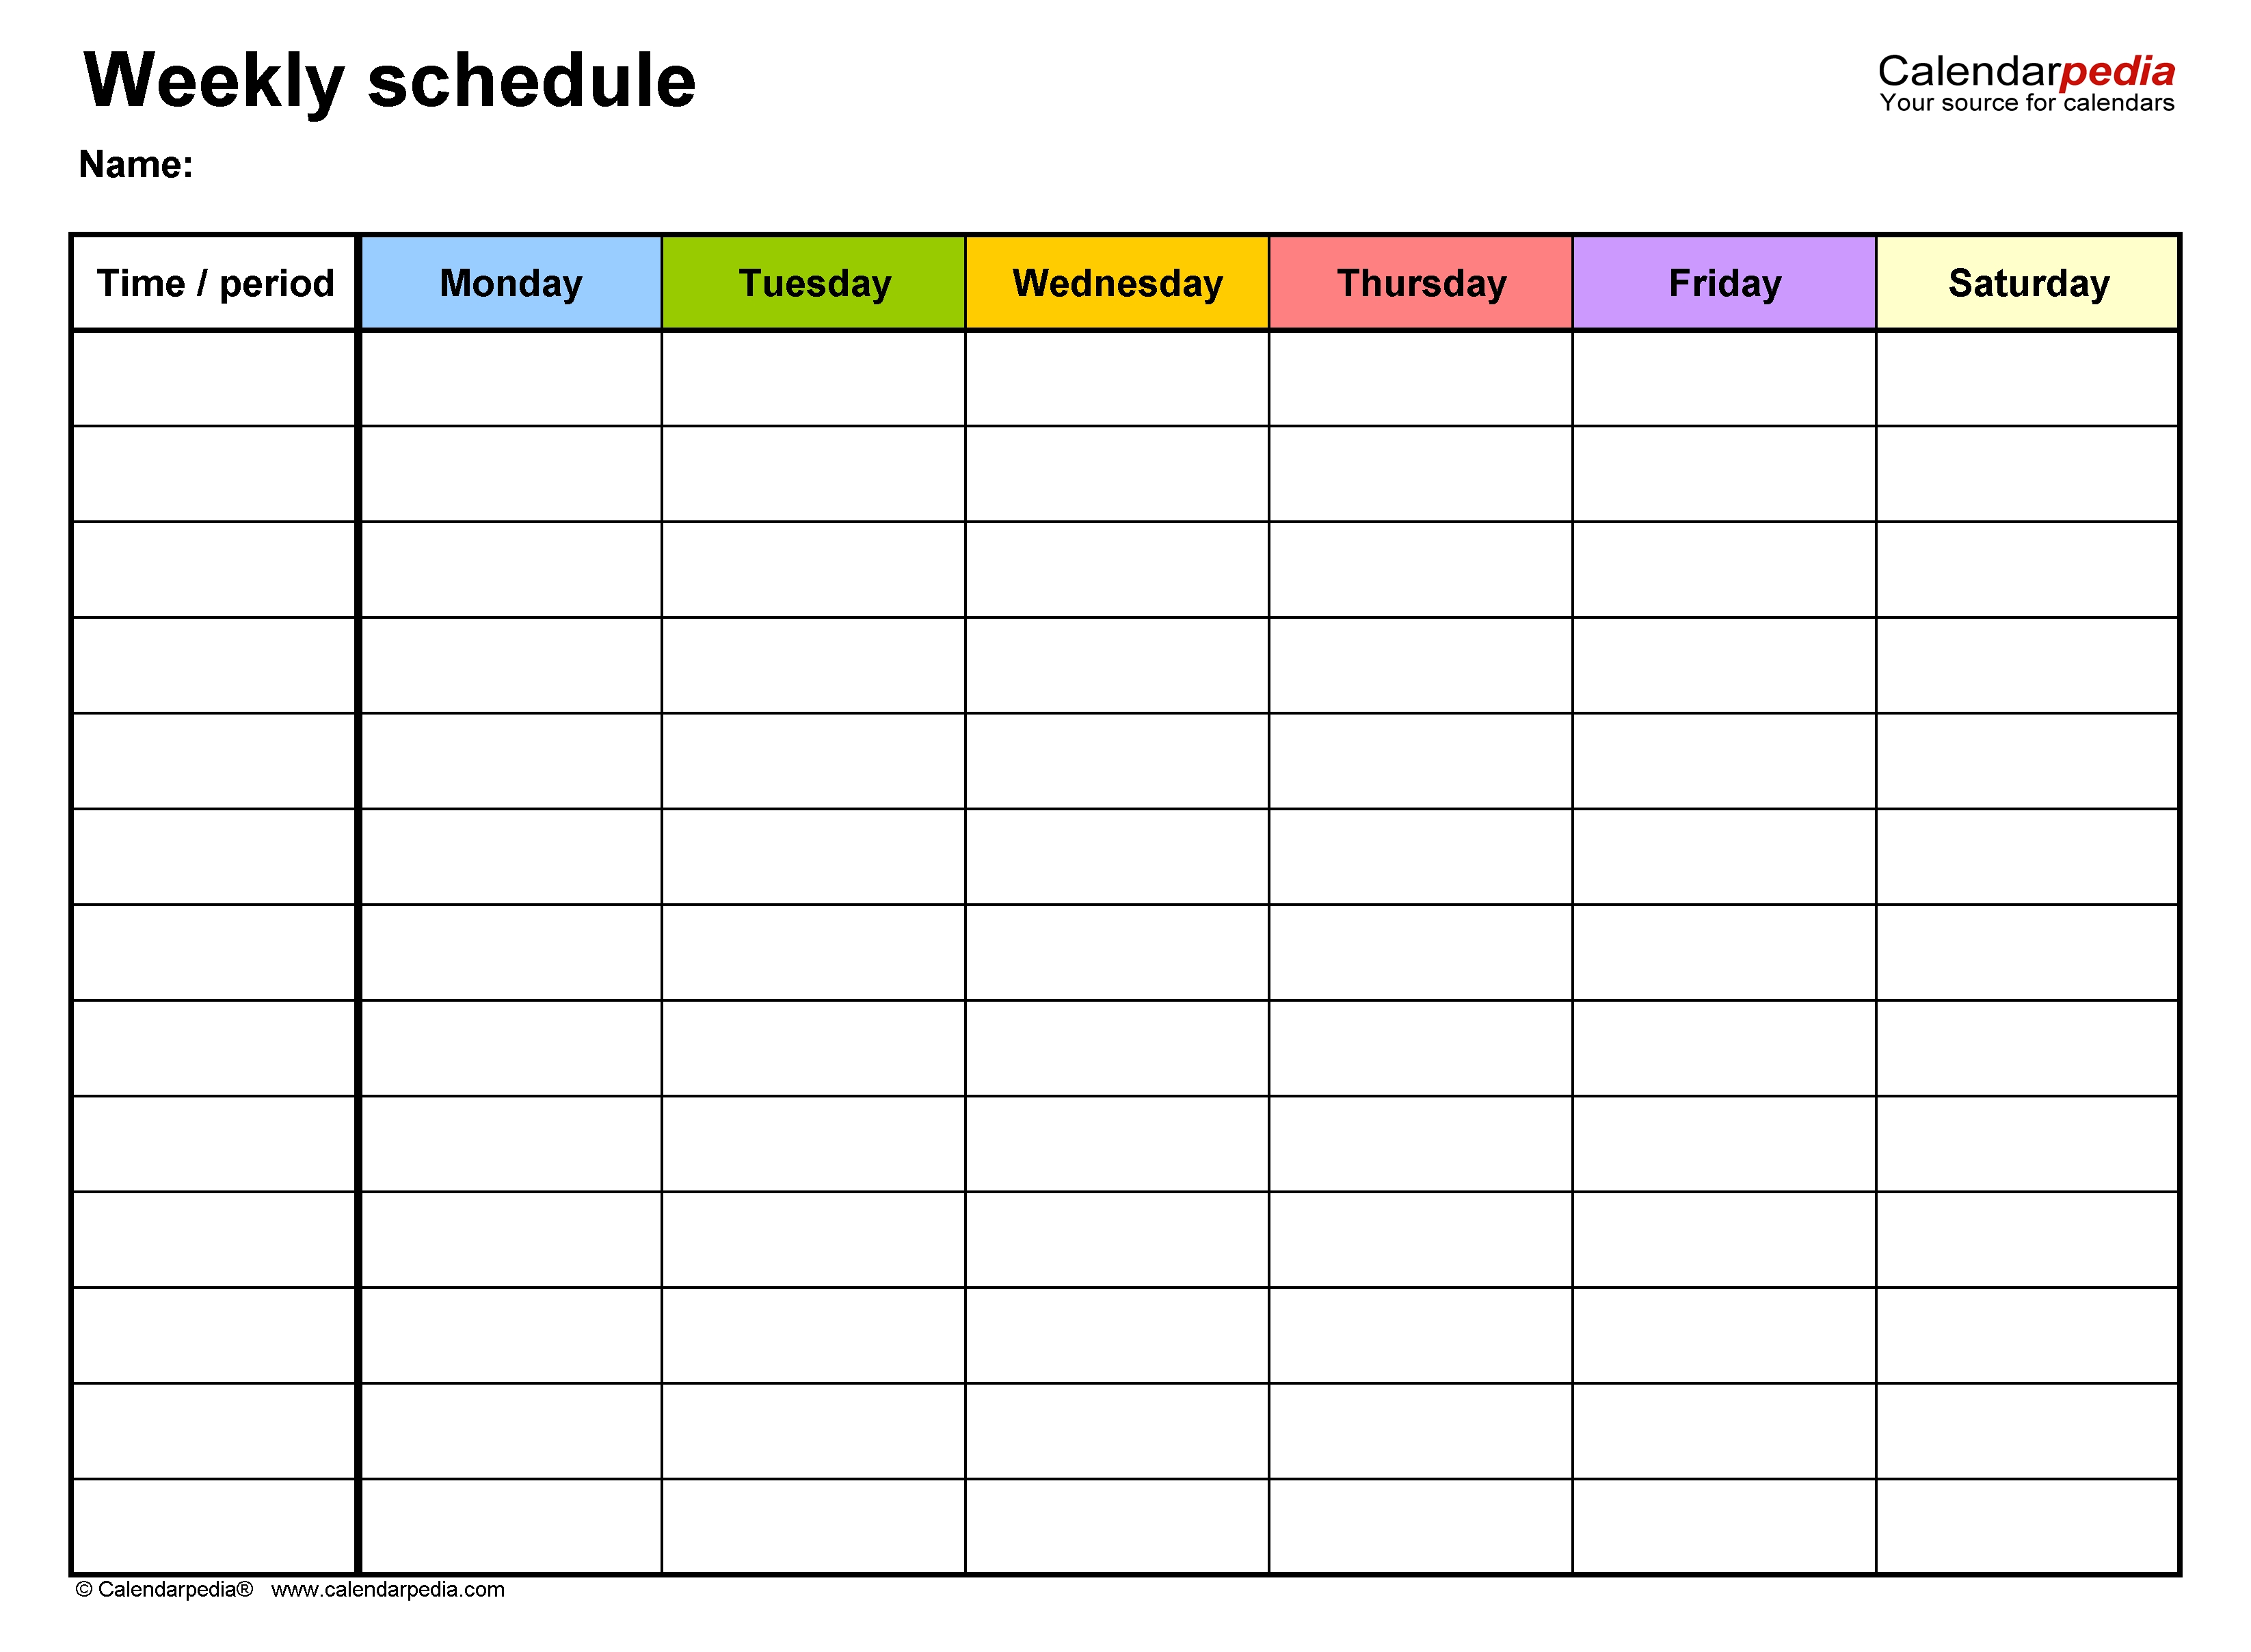 Free Weekly Schedules For Excel - 18 Templates Calendar Template Week View